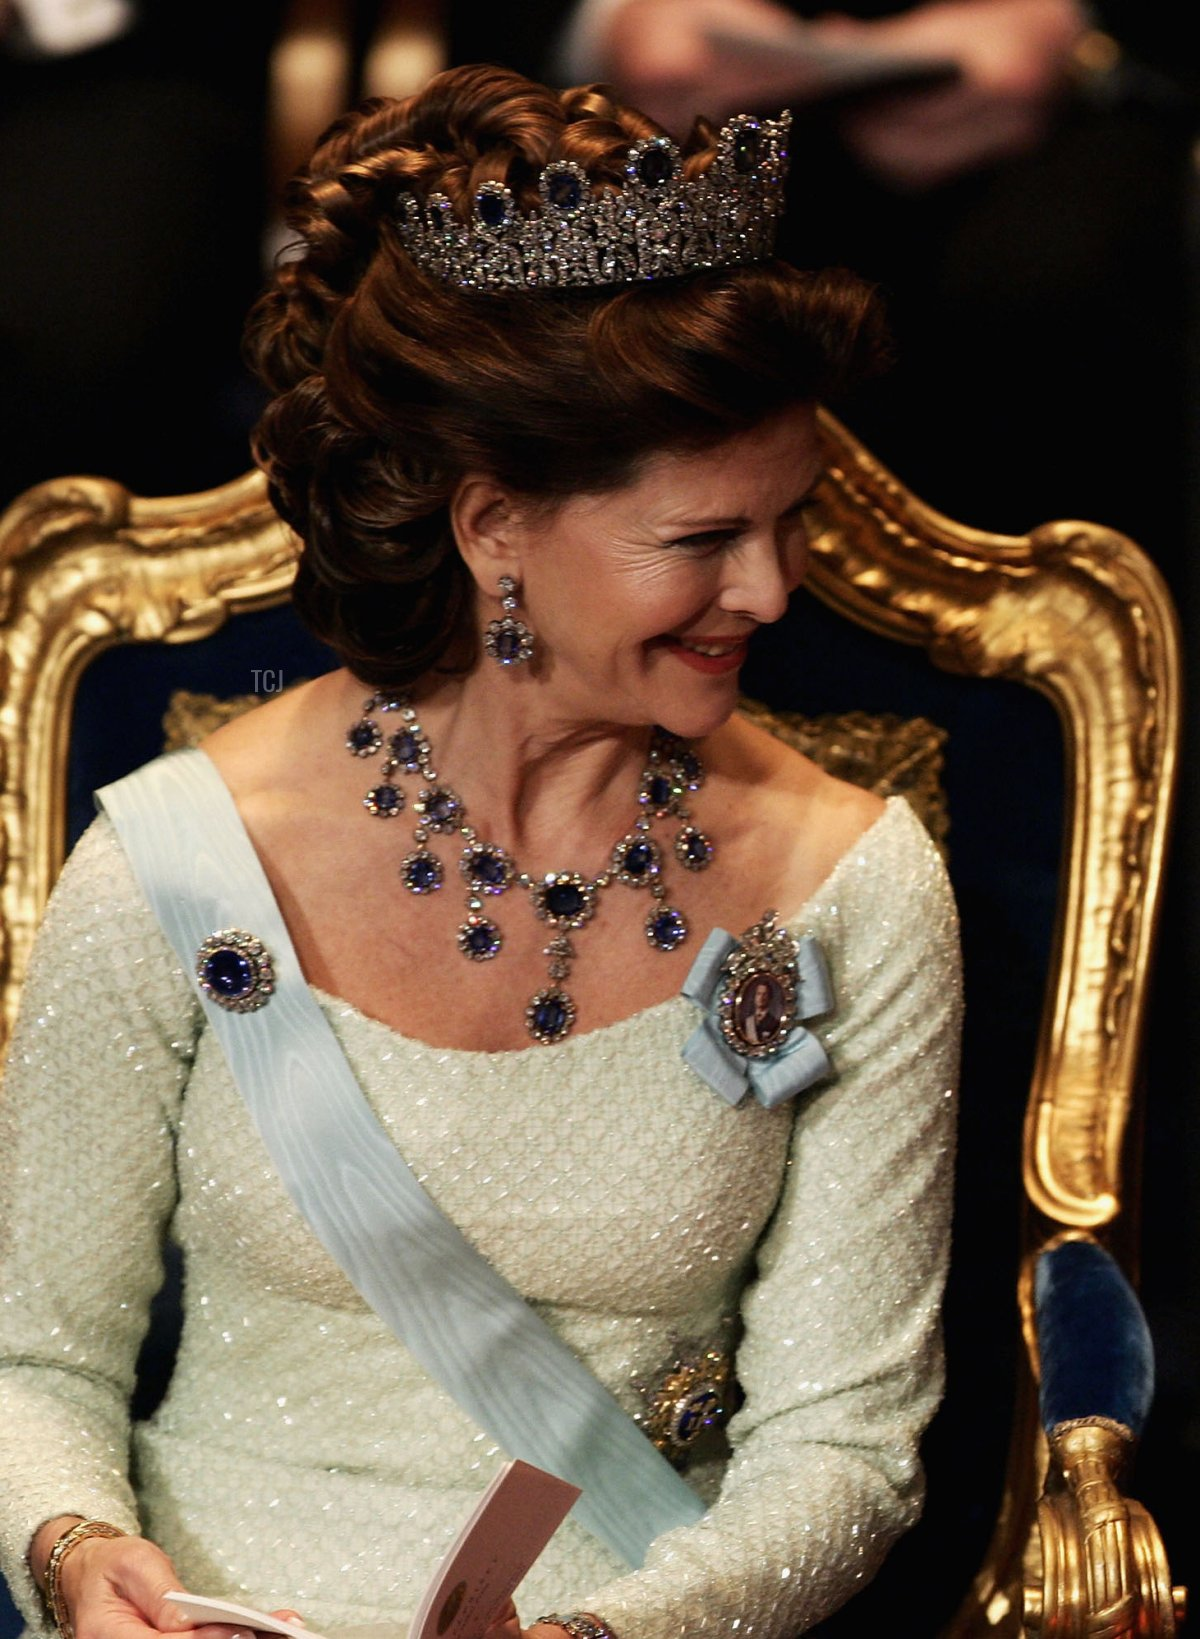 Queen Silvia of Sweden talks to Princess Lilian during the awarding ceremony of the Nobel Prizes at City Hall December 10, 2004 in Stockholm, Sweden